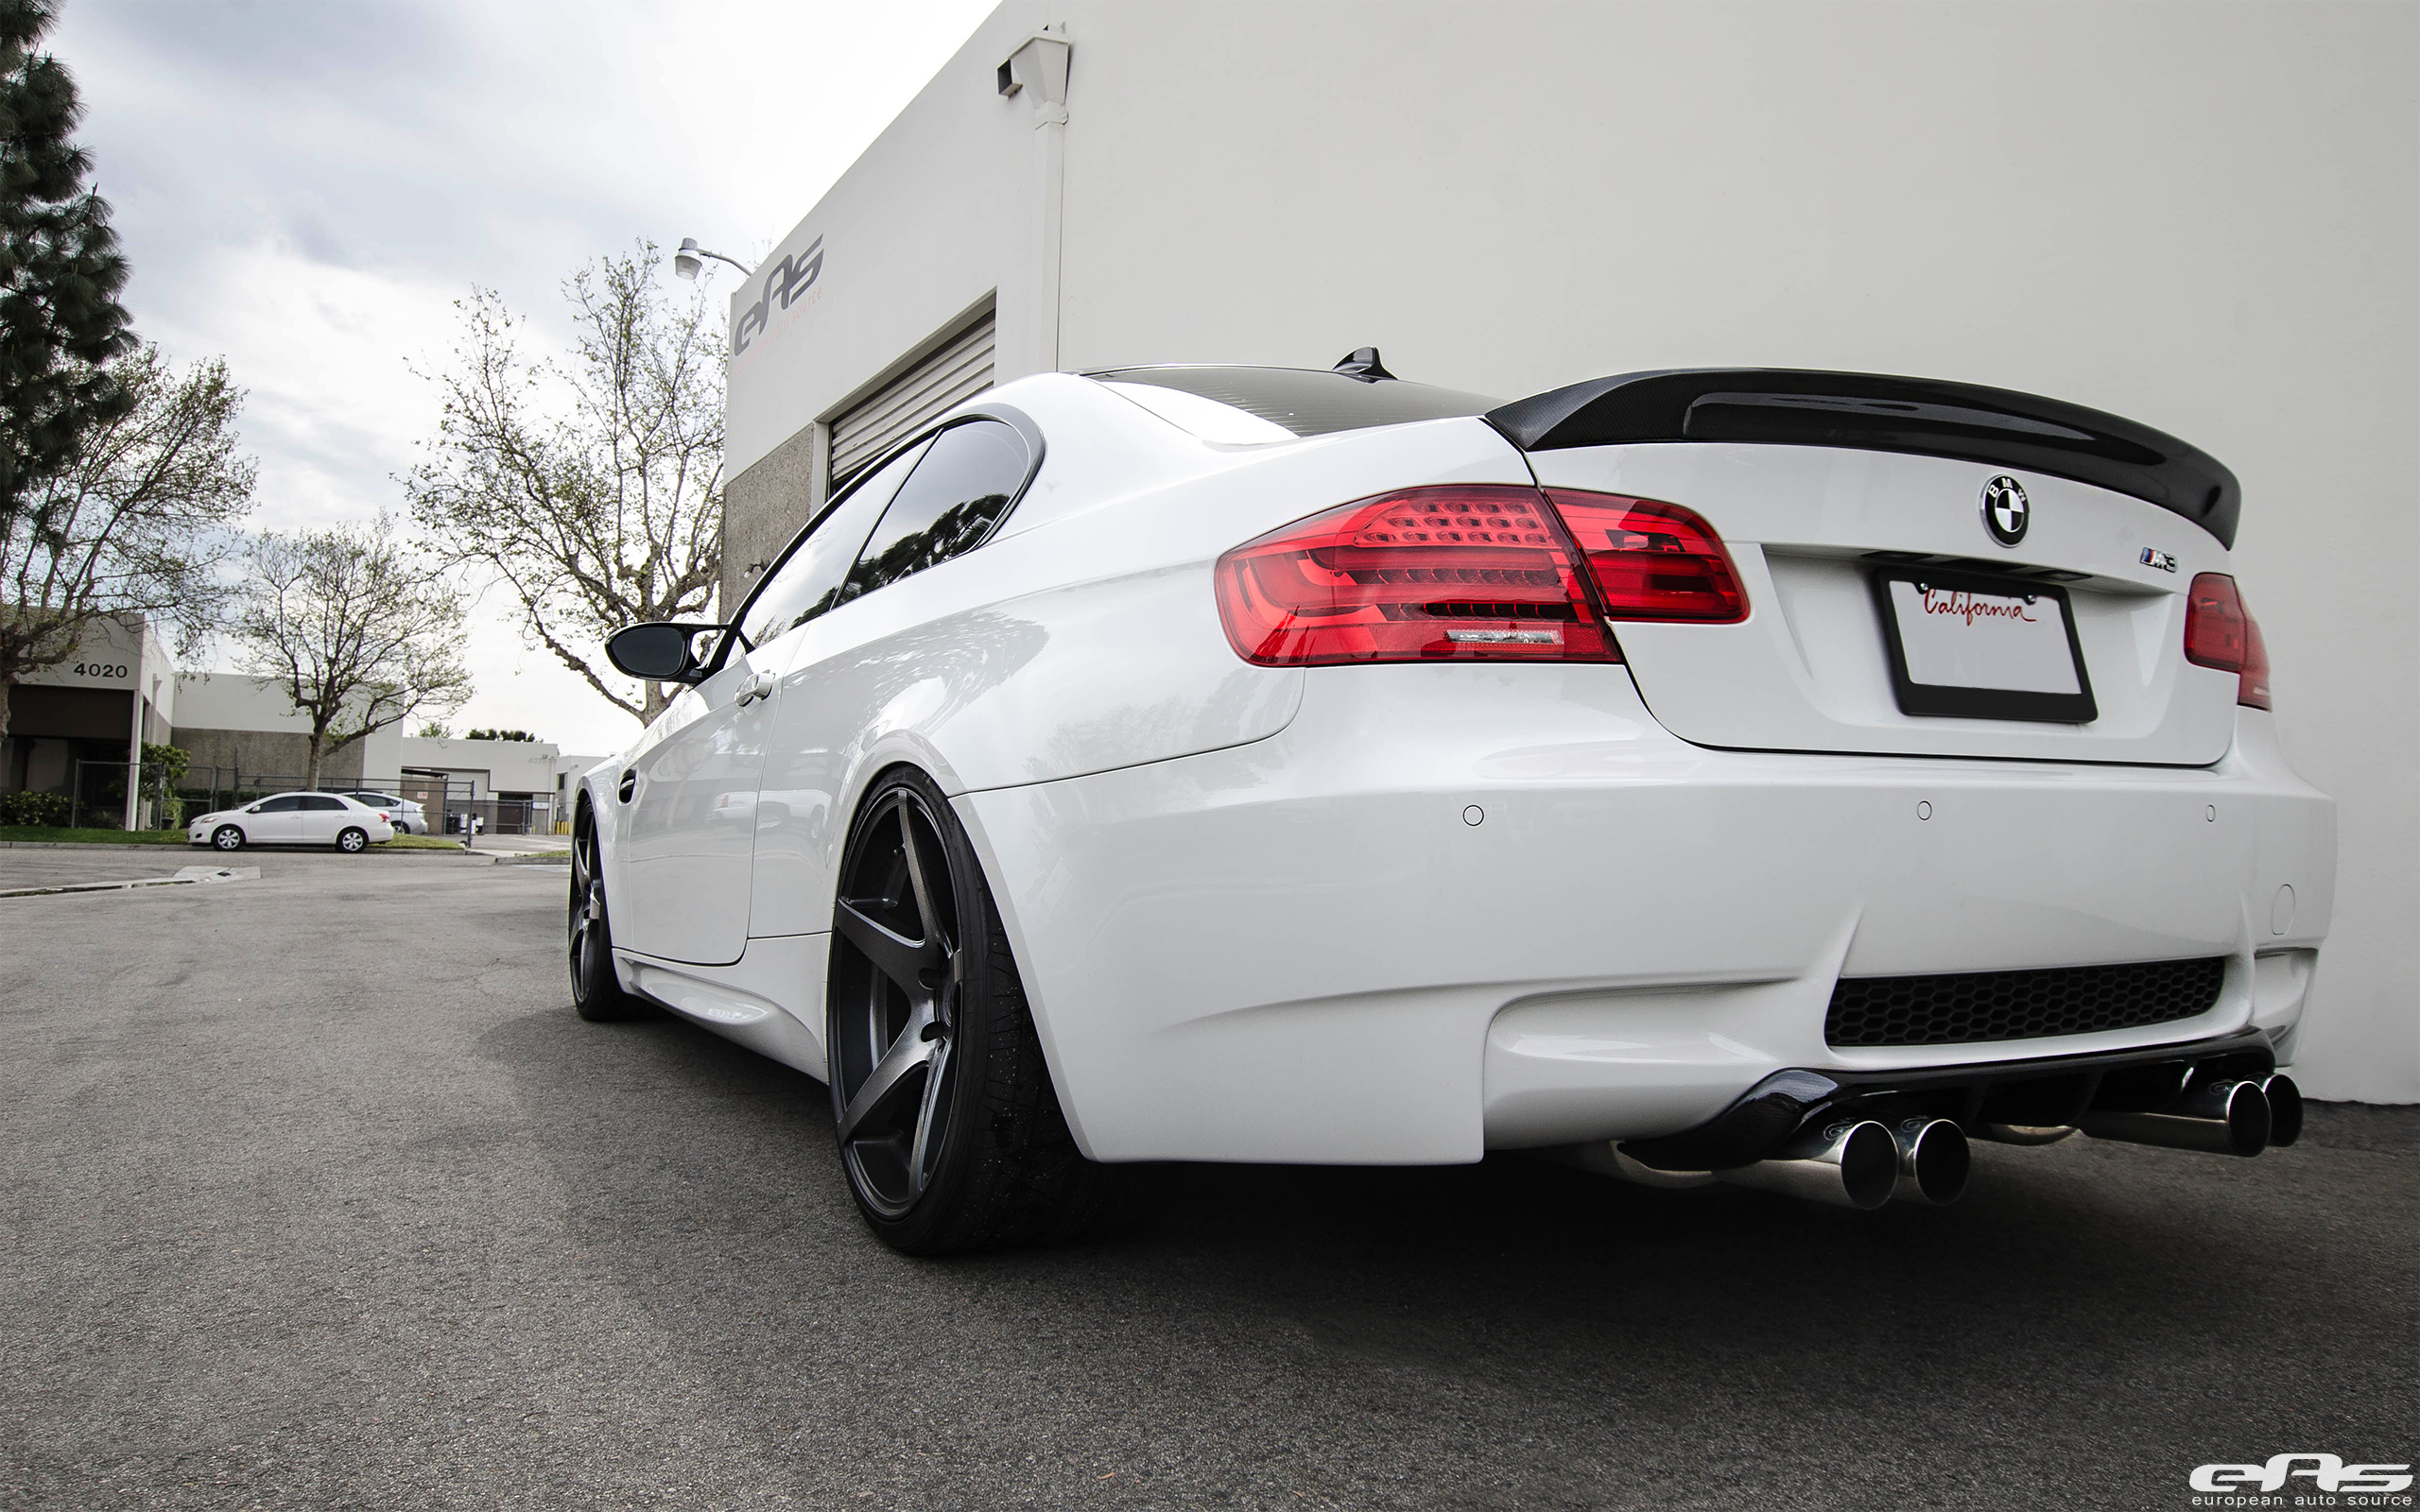 Alpine White Bmw E92 M3 Gets Some Over The Top Visual Upgrades